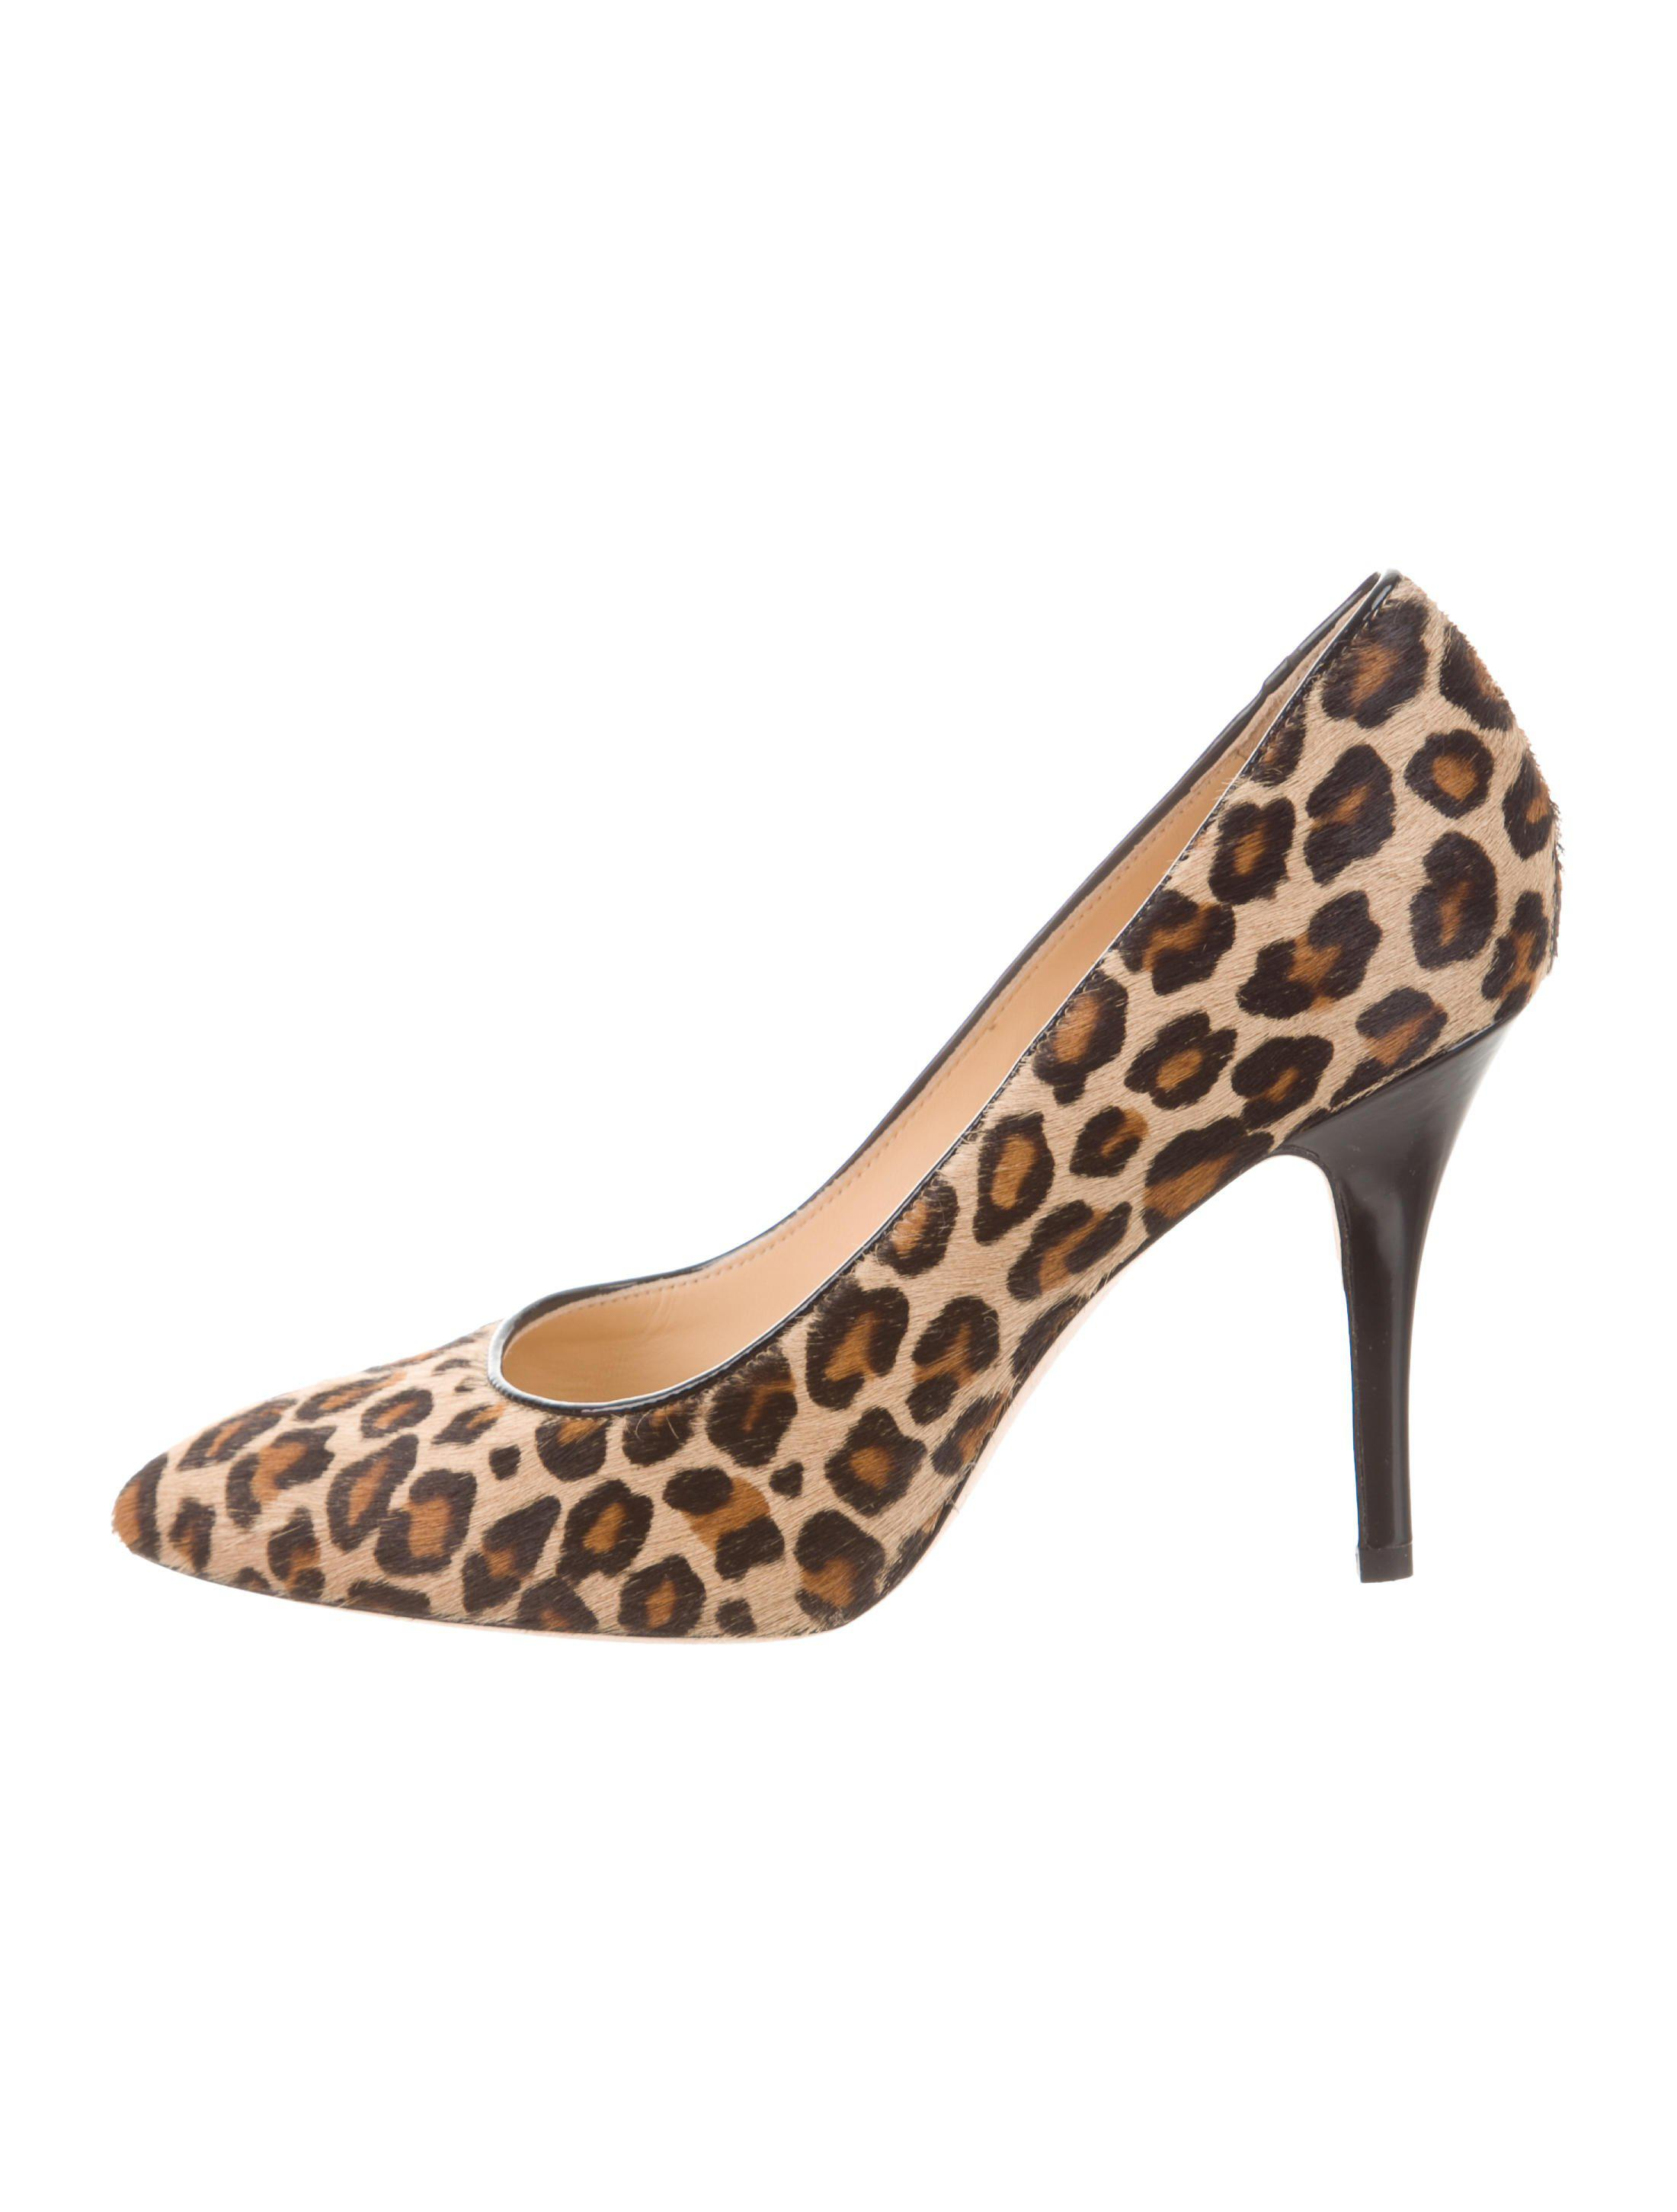 Kate Spade New York Cheetah Print Ponyhair Pumps w/ Tags outlet 2014 new 9uCM0